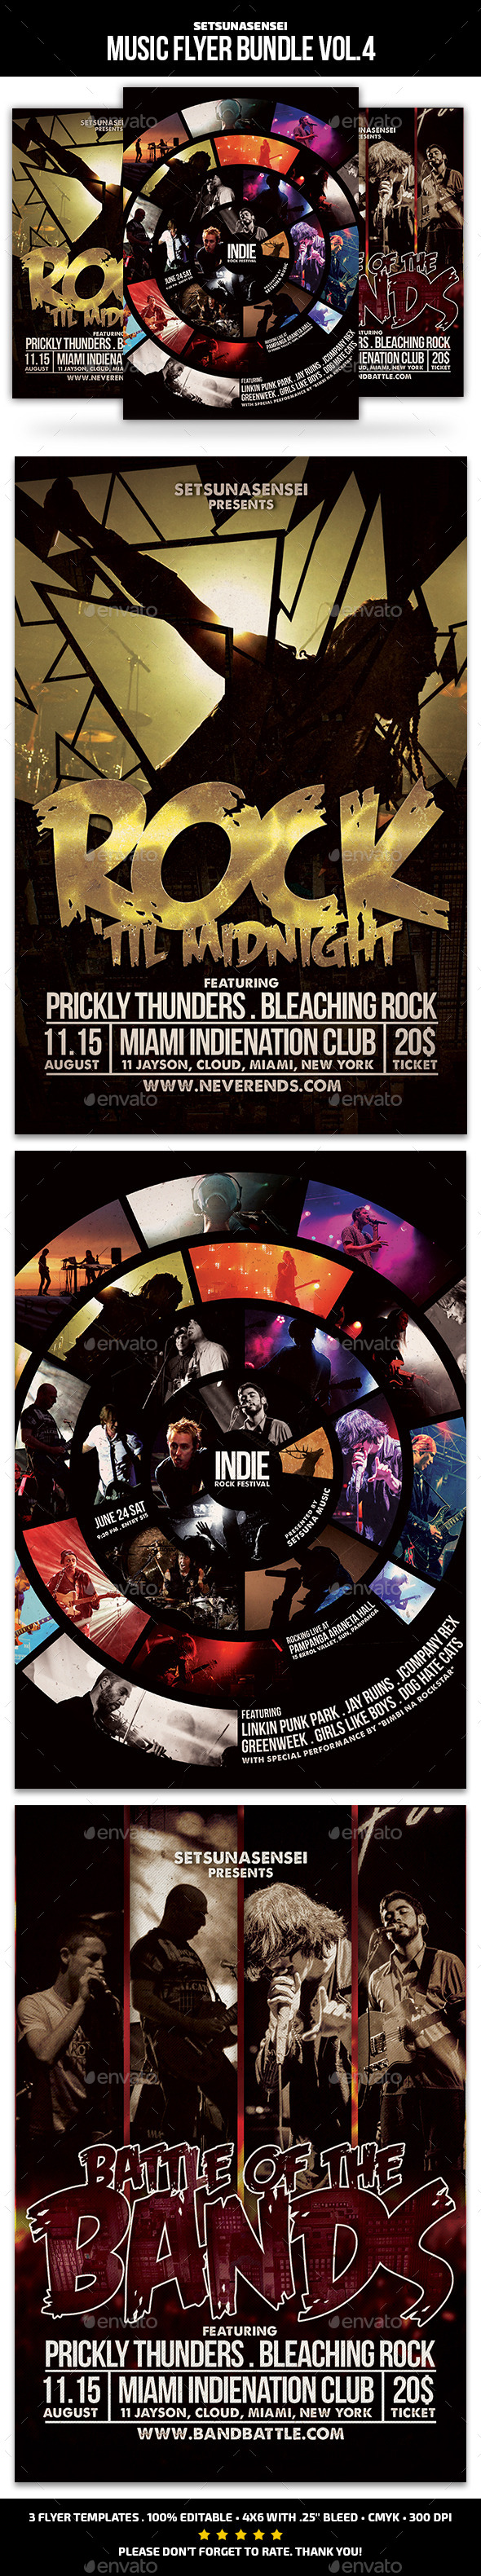 GraphicRiver Music Flyer Bundle Vol 4 11388061